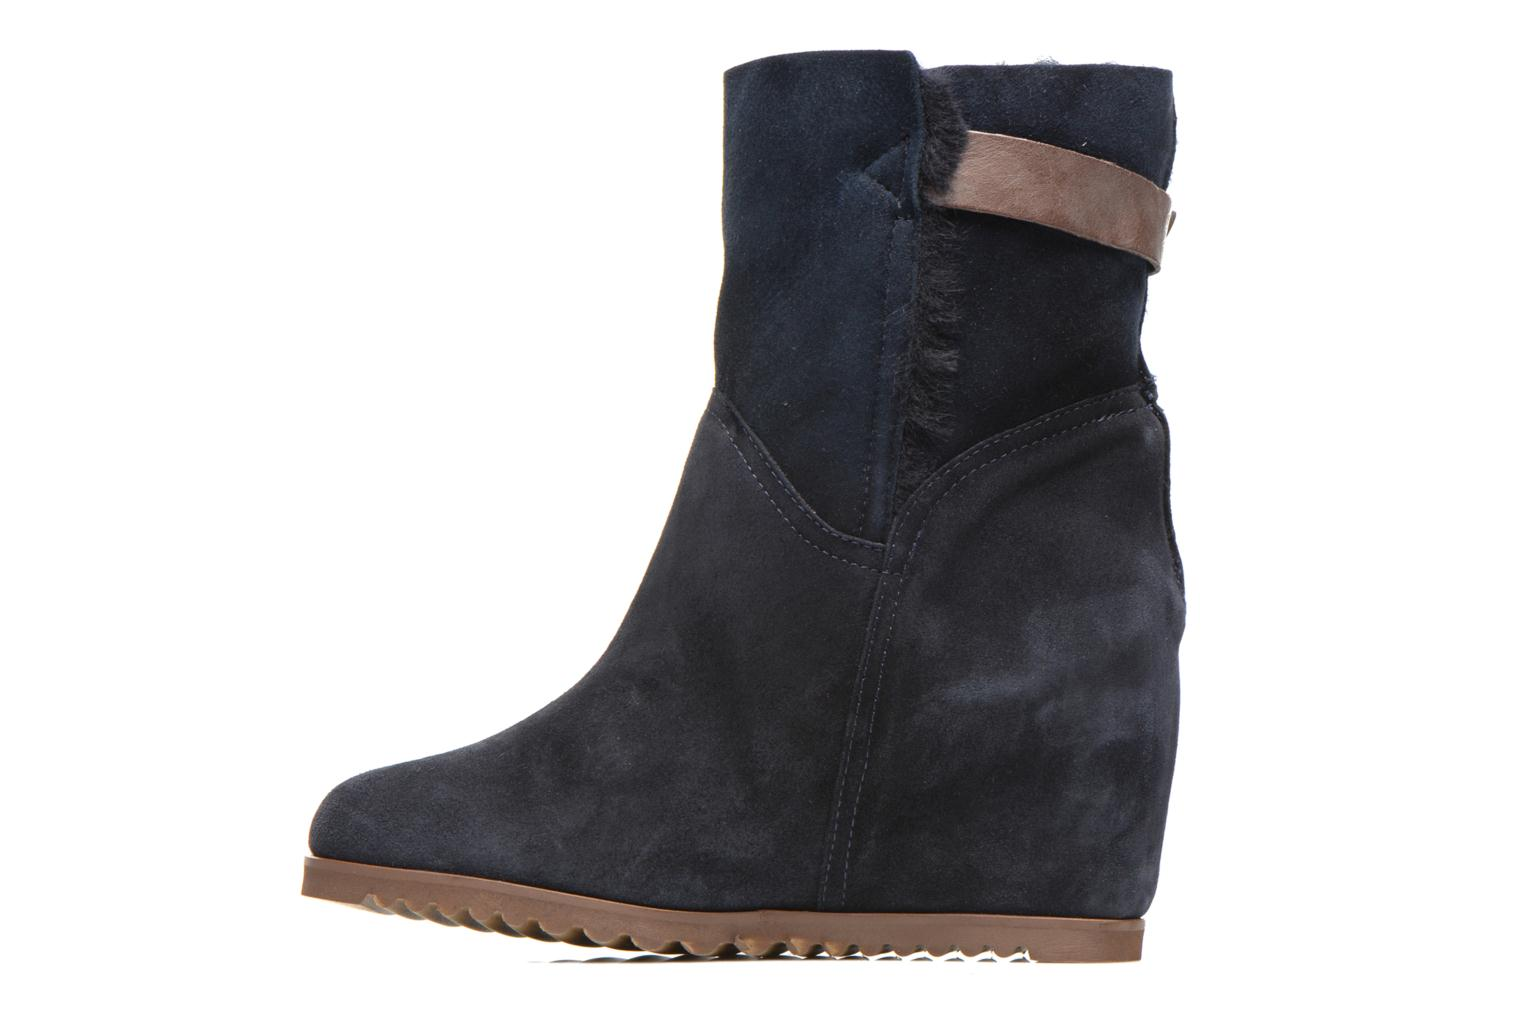 Maddie Velour Space/Shearling Navy